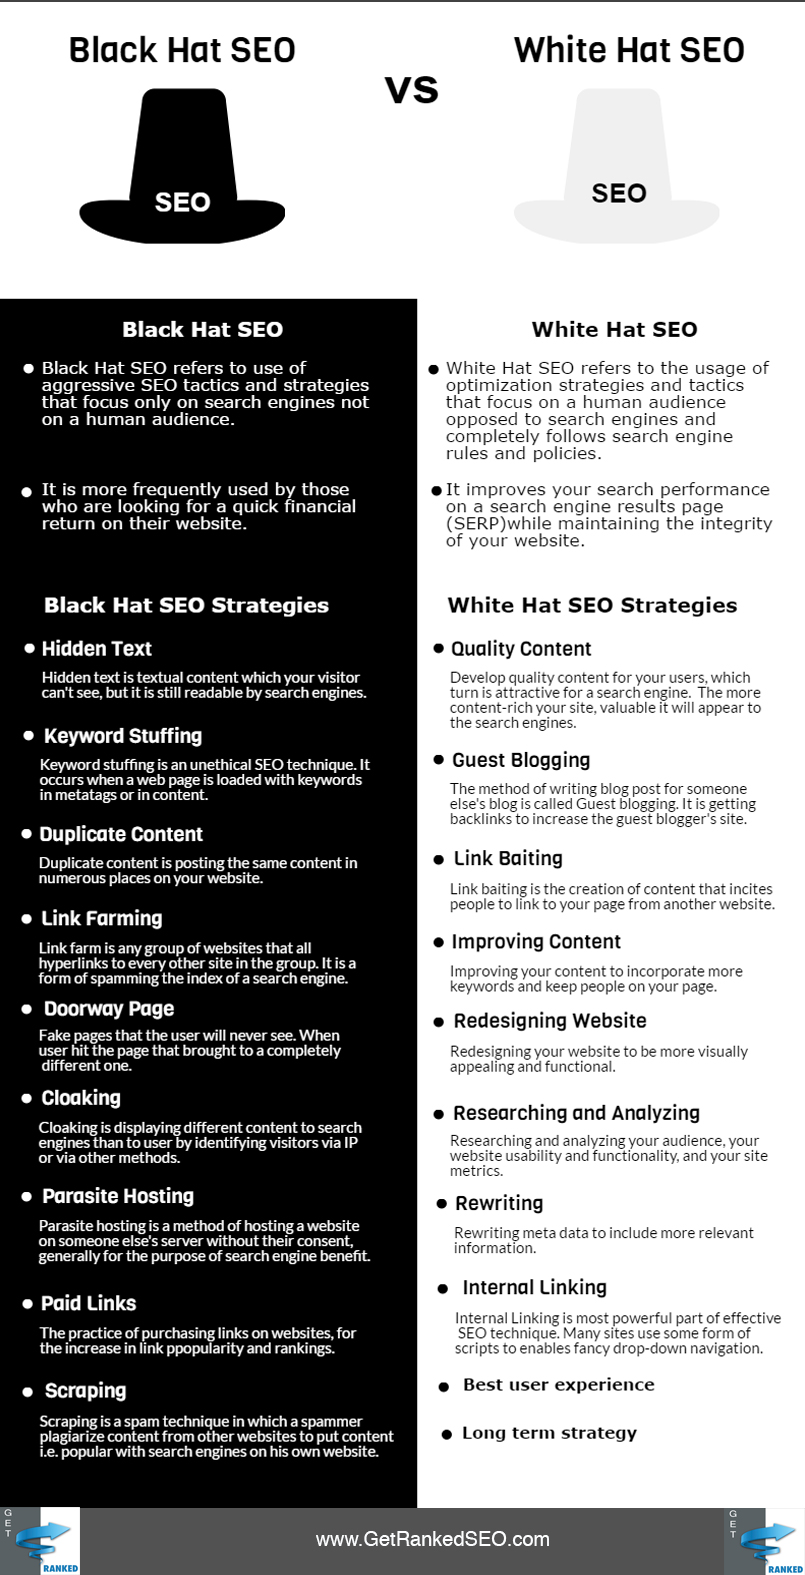 small business local service based black hat white hat seo